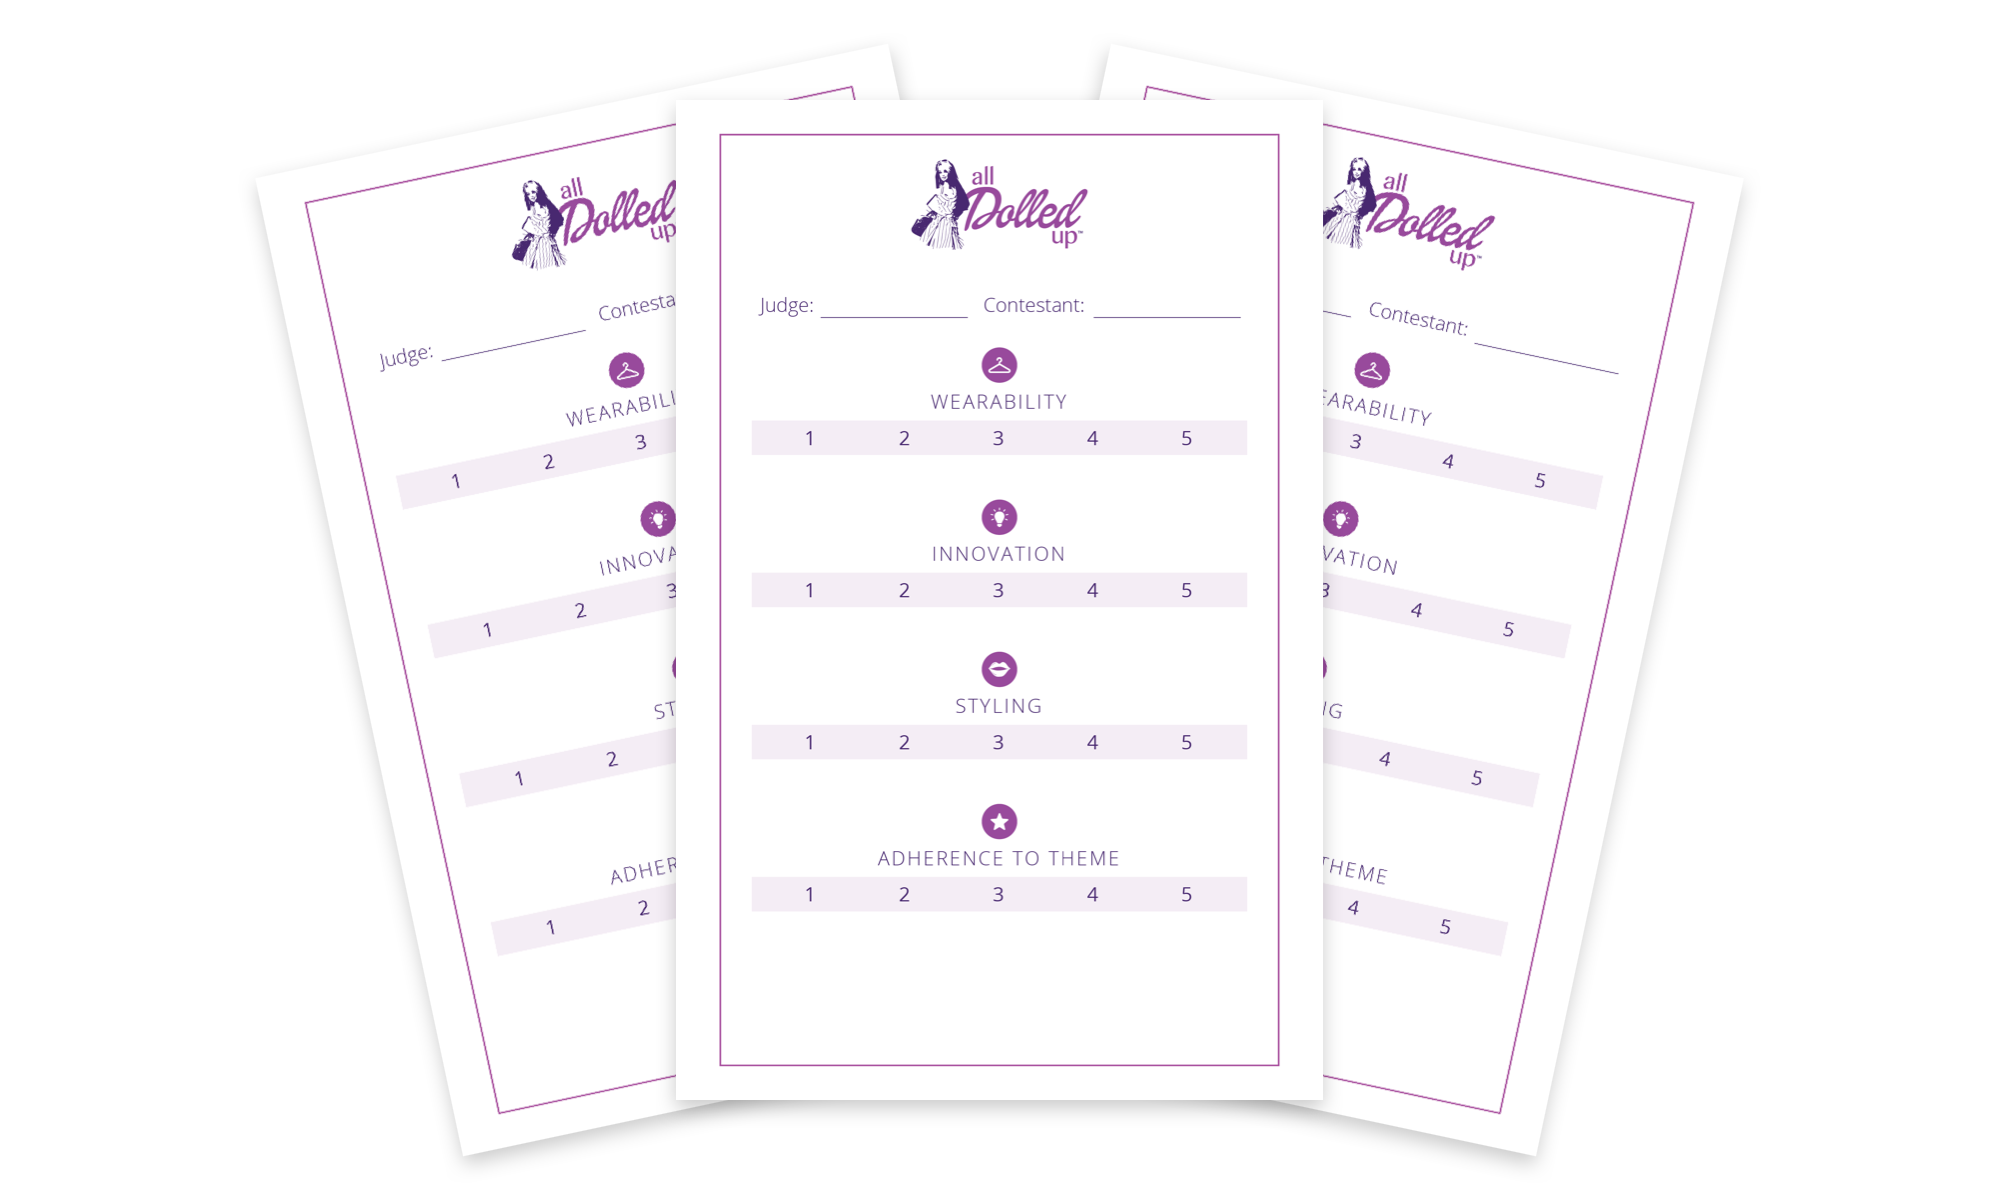 Custom branded scorecards featured the four categories: Wearability, Innovation, Styling, and Adherence to Theme.